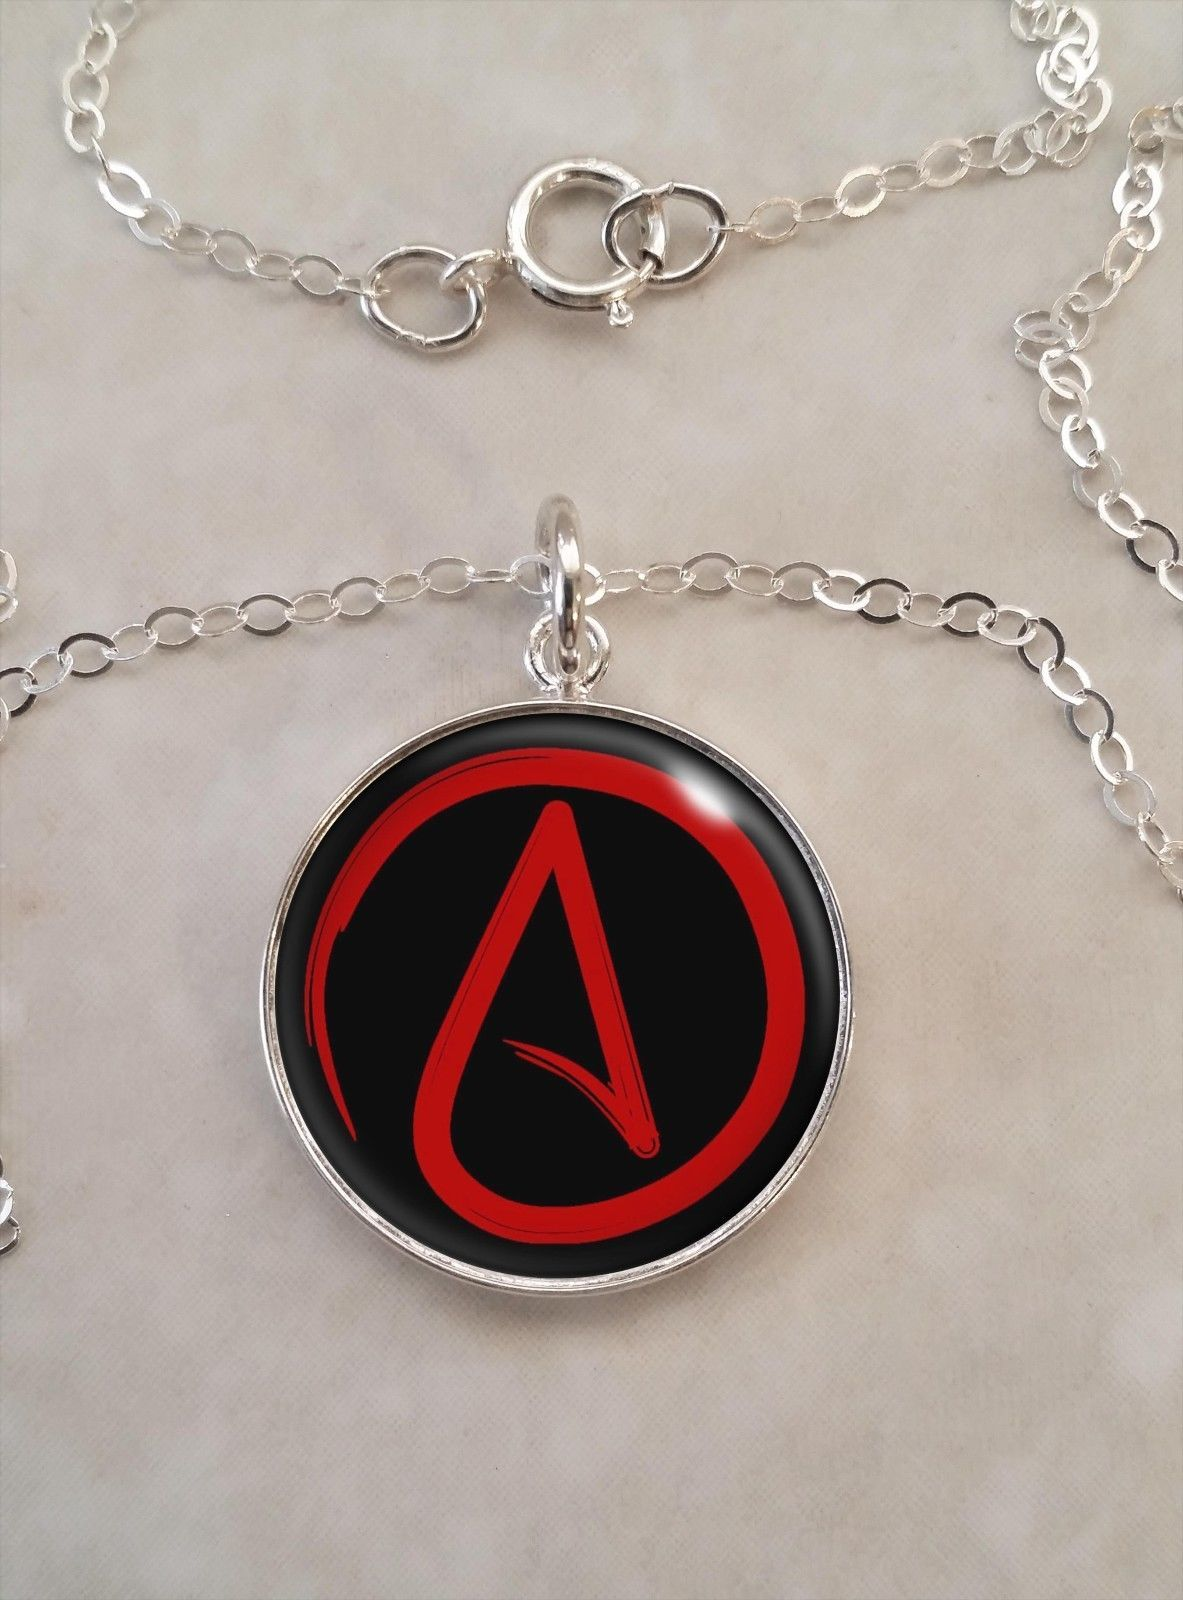 Sterling Silver 925 Pendant Necklace Atheist Symbol Choose Your